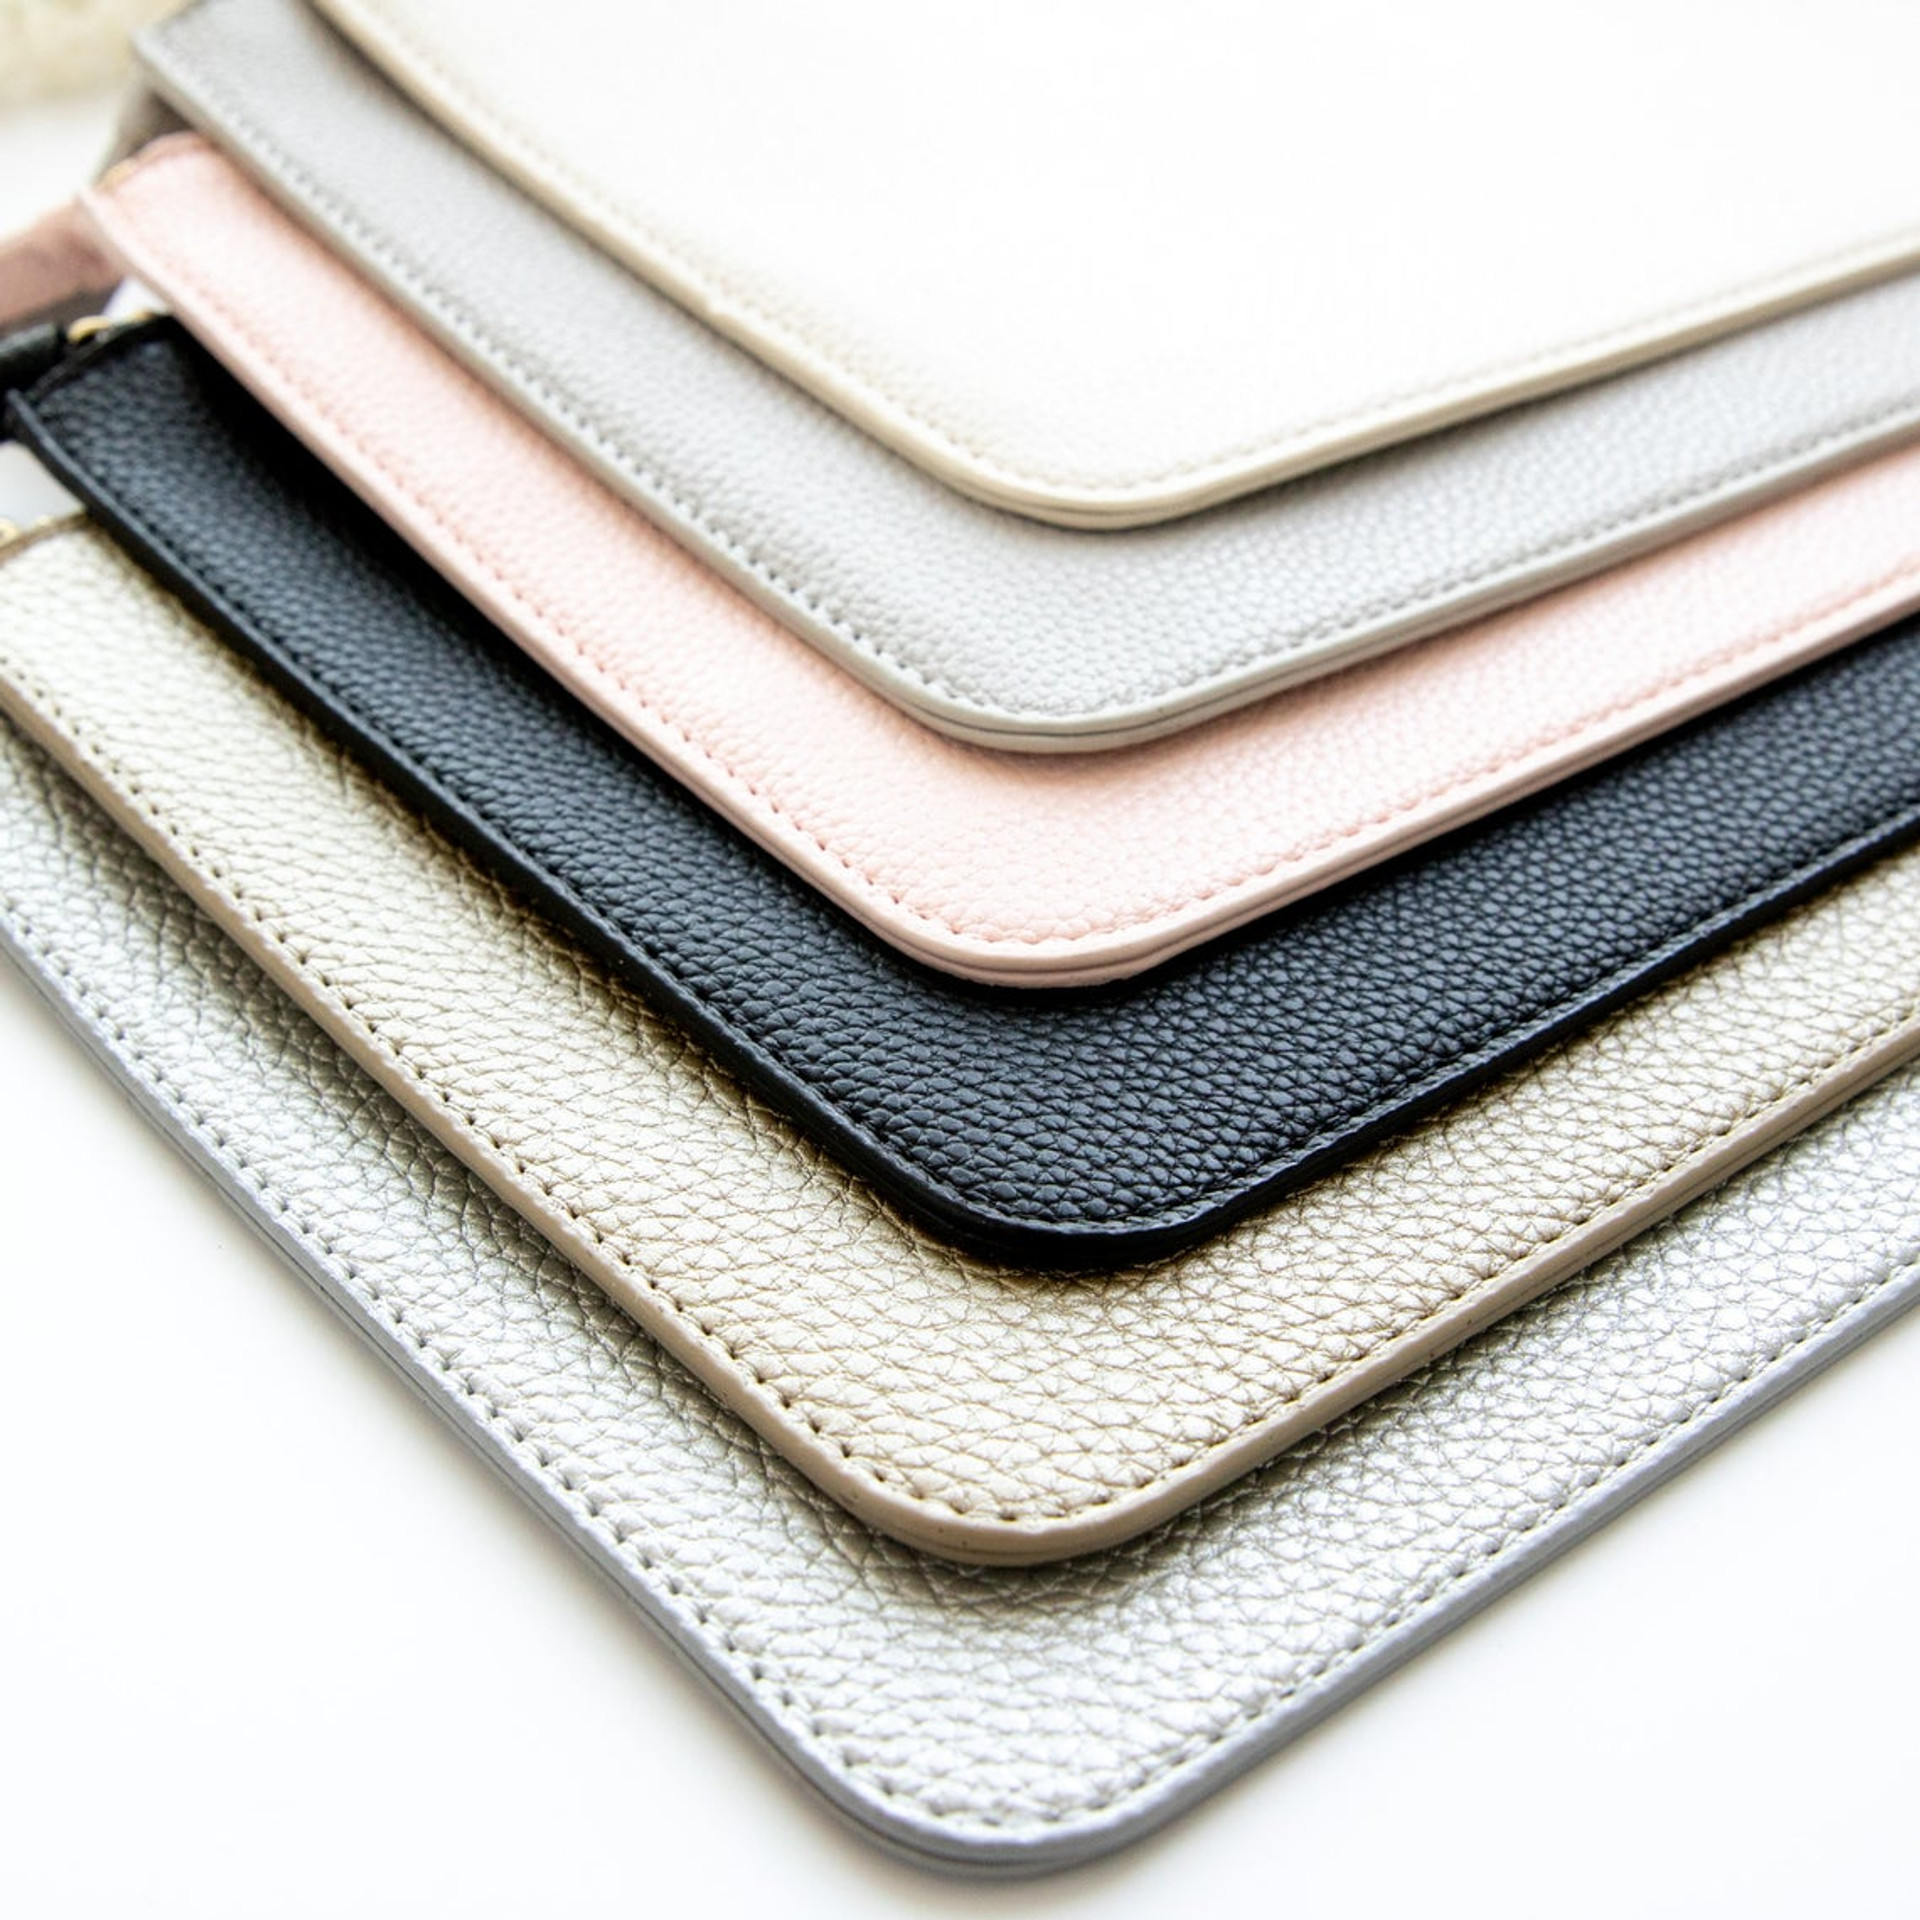 Personalized Vegan Leather Clutch Bag